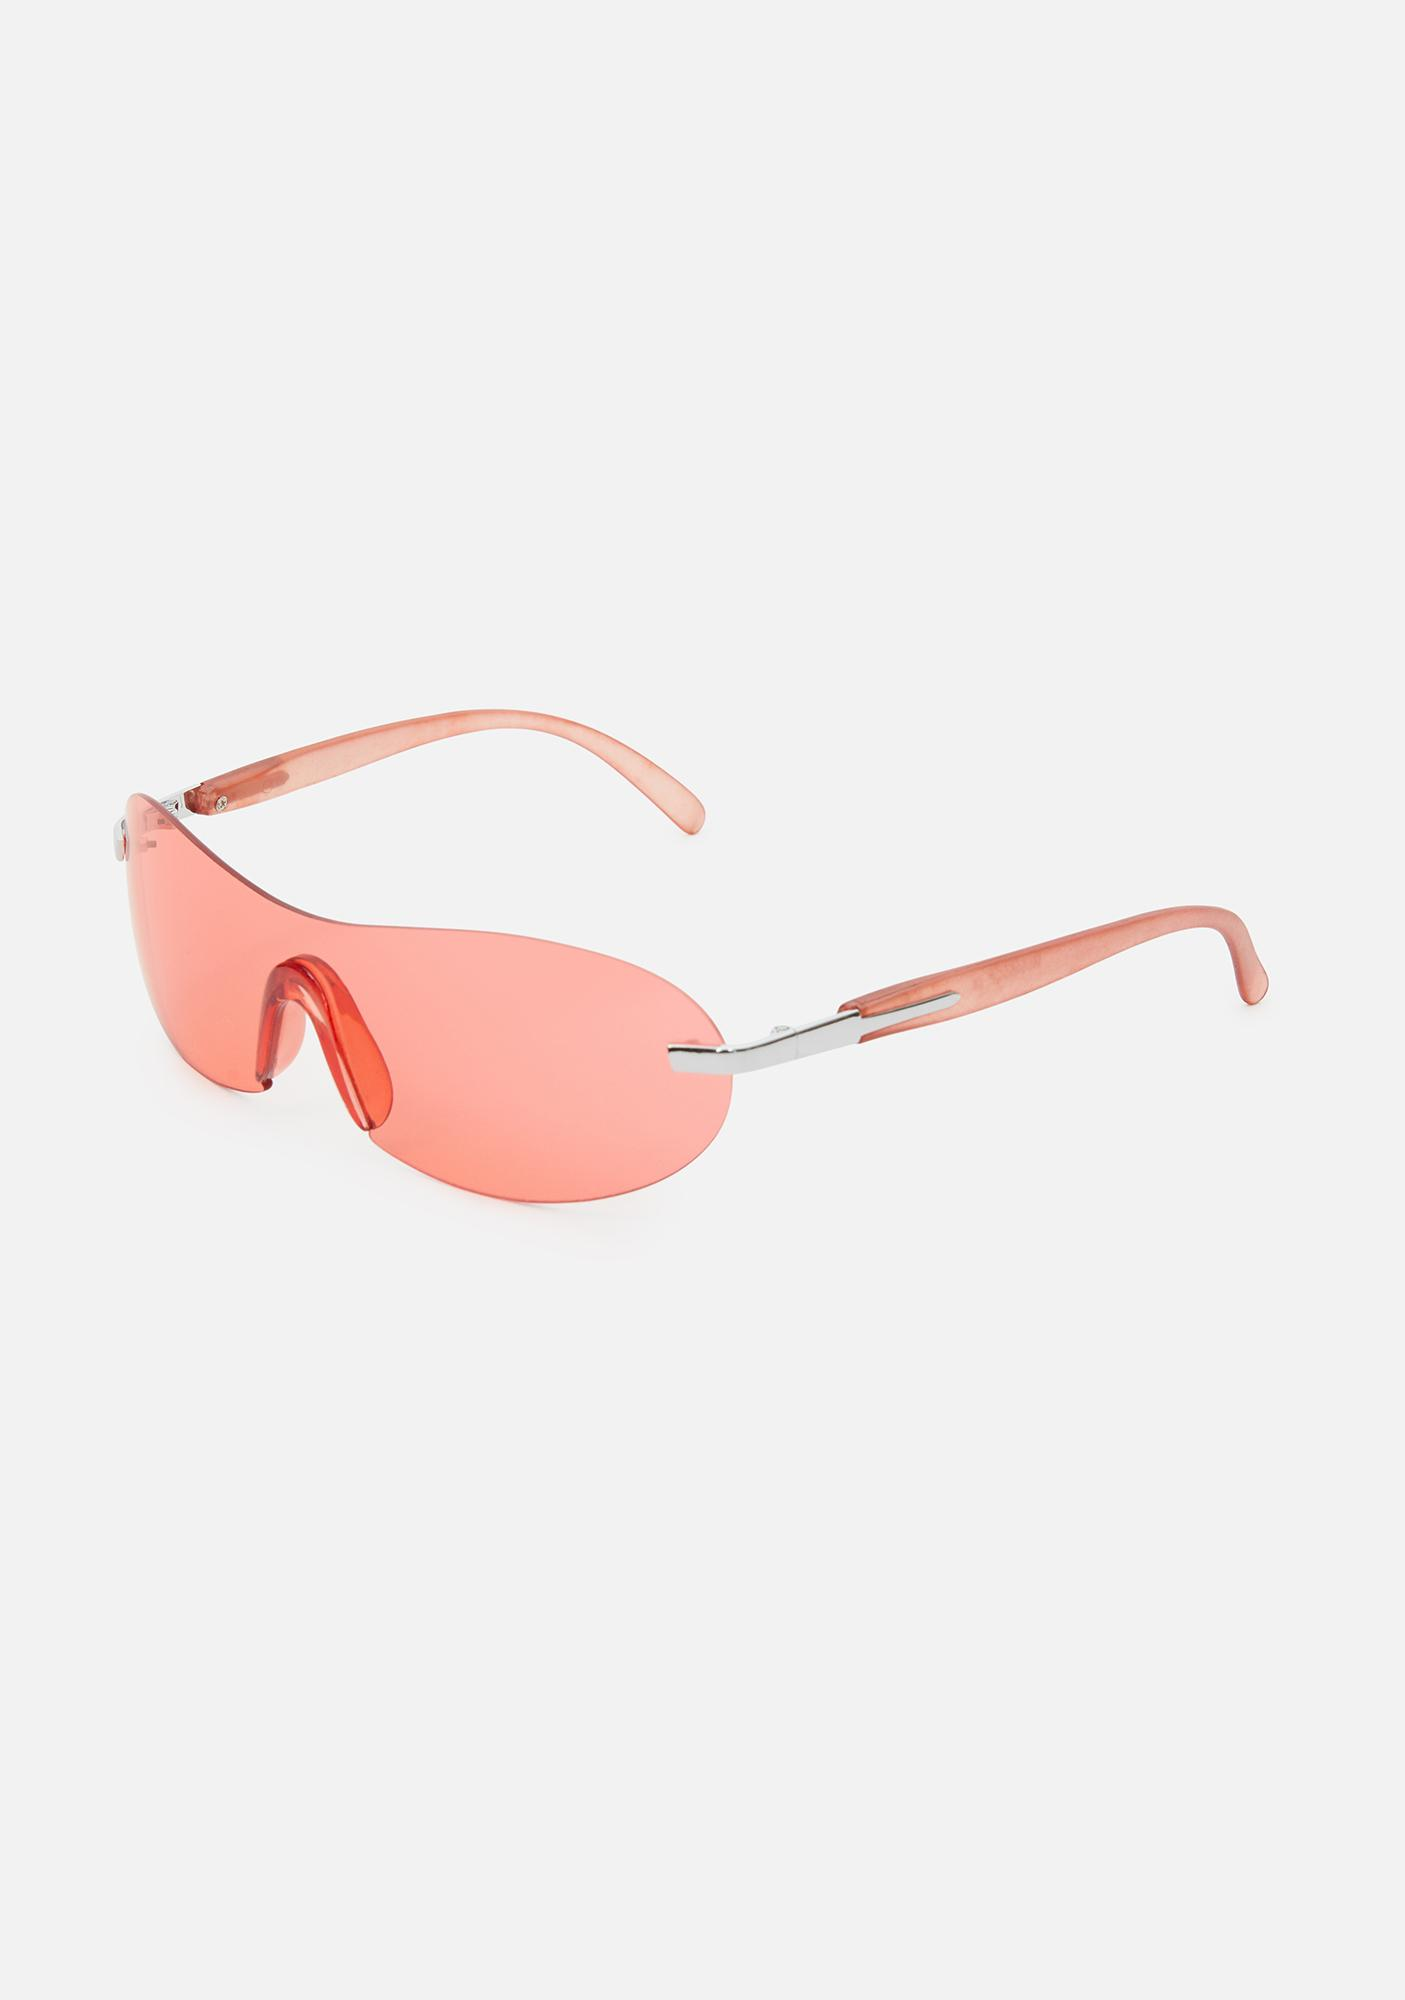 Good Times Eyewear Red 2000s Shield Sunglasses